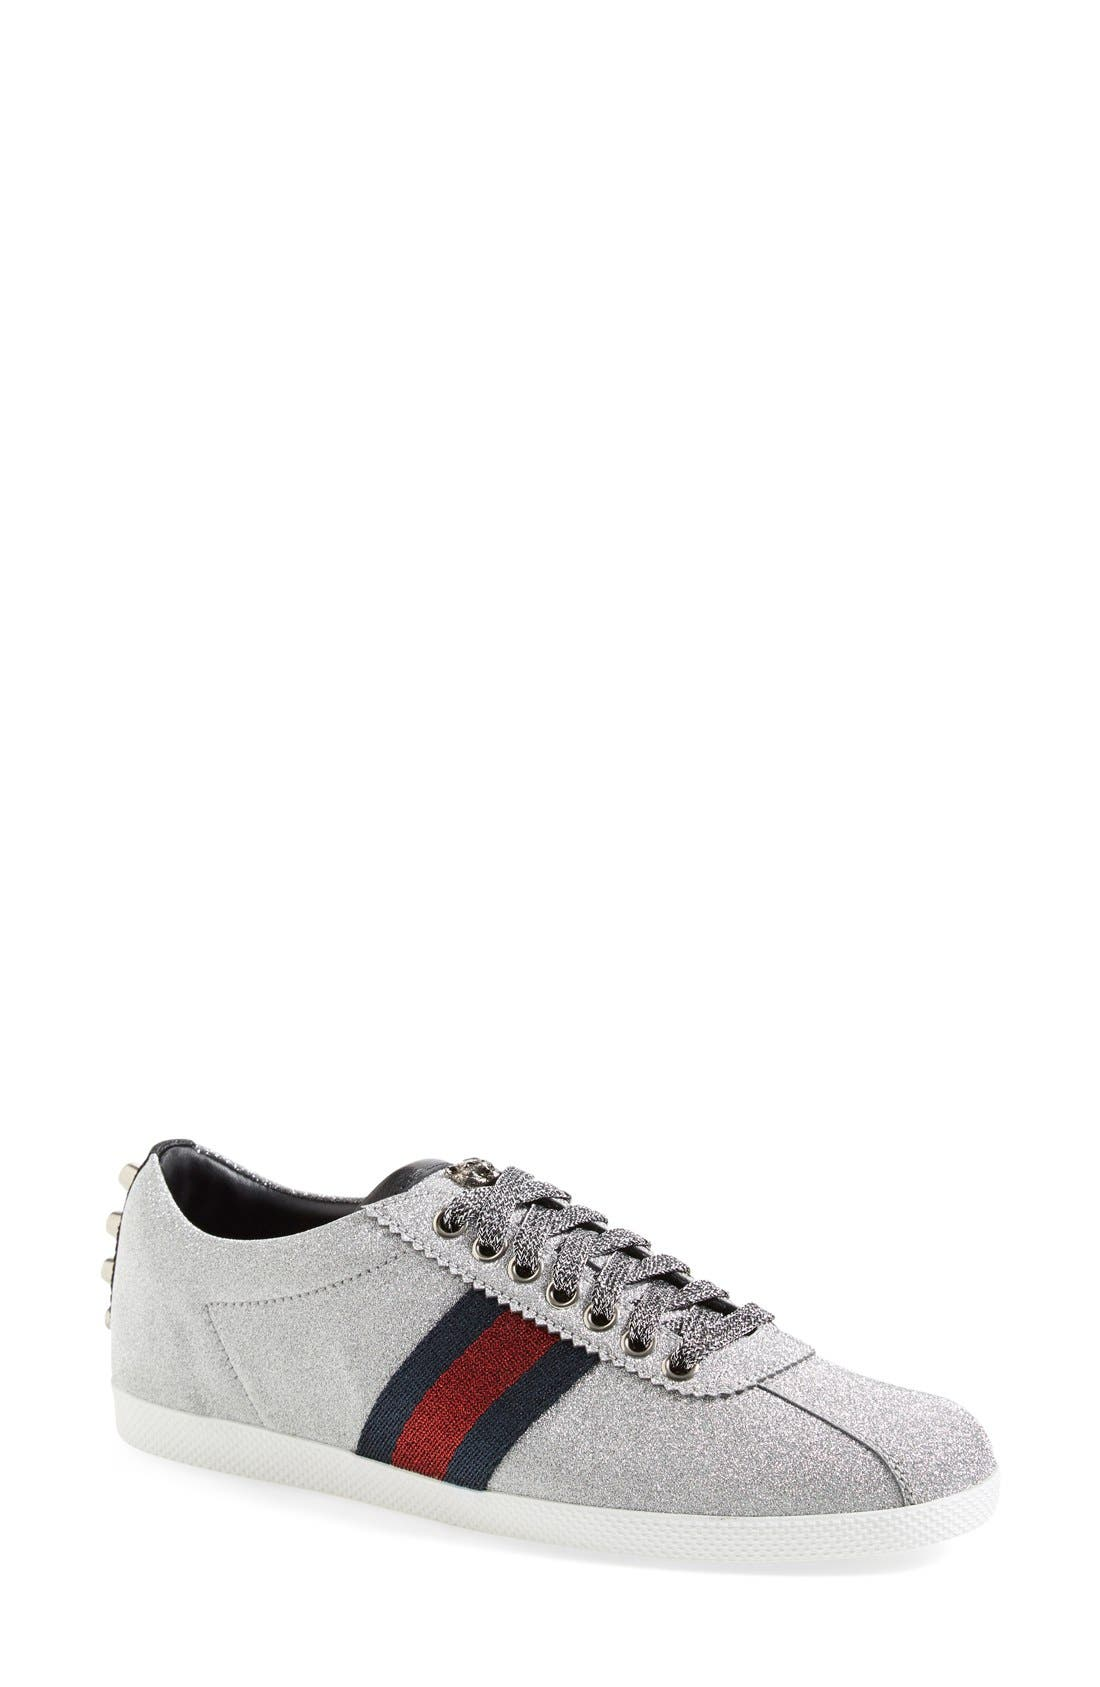 Main Image - Gucci Lace-Up Sneaker (Women)